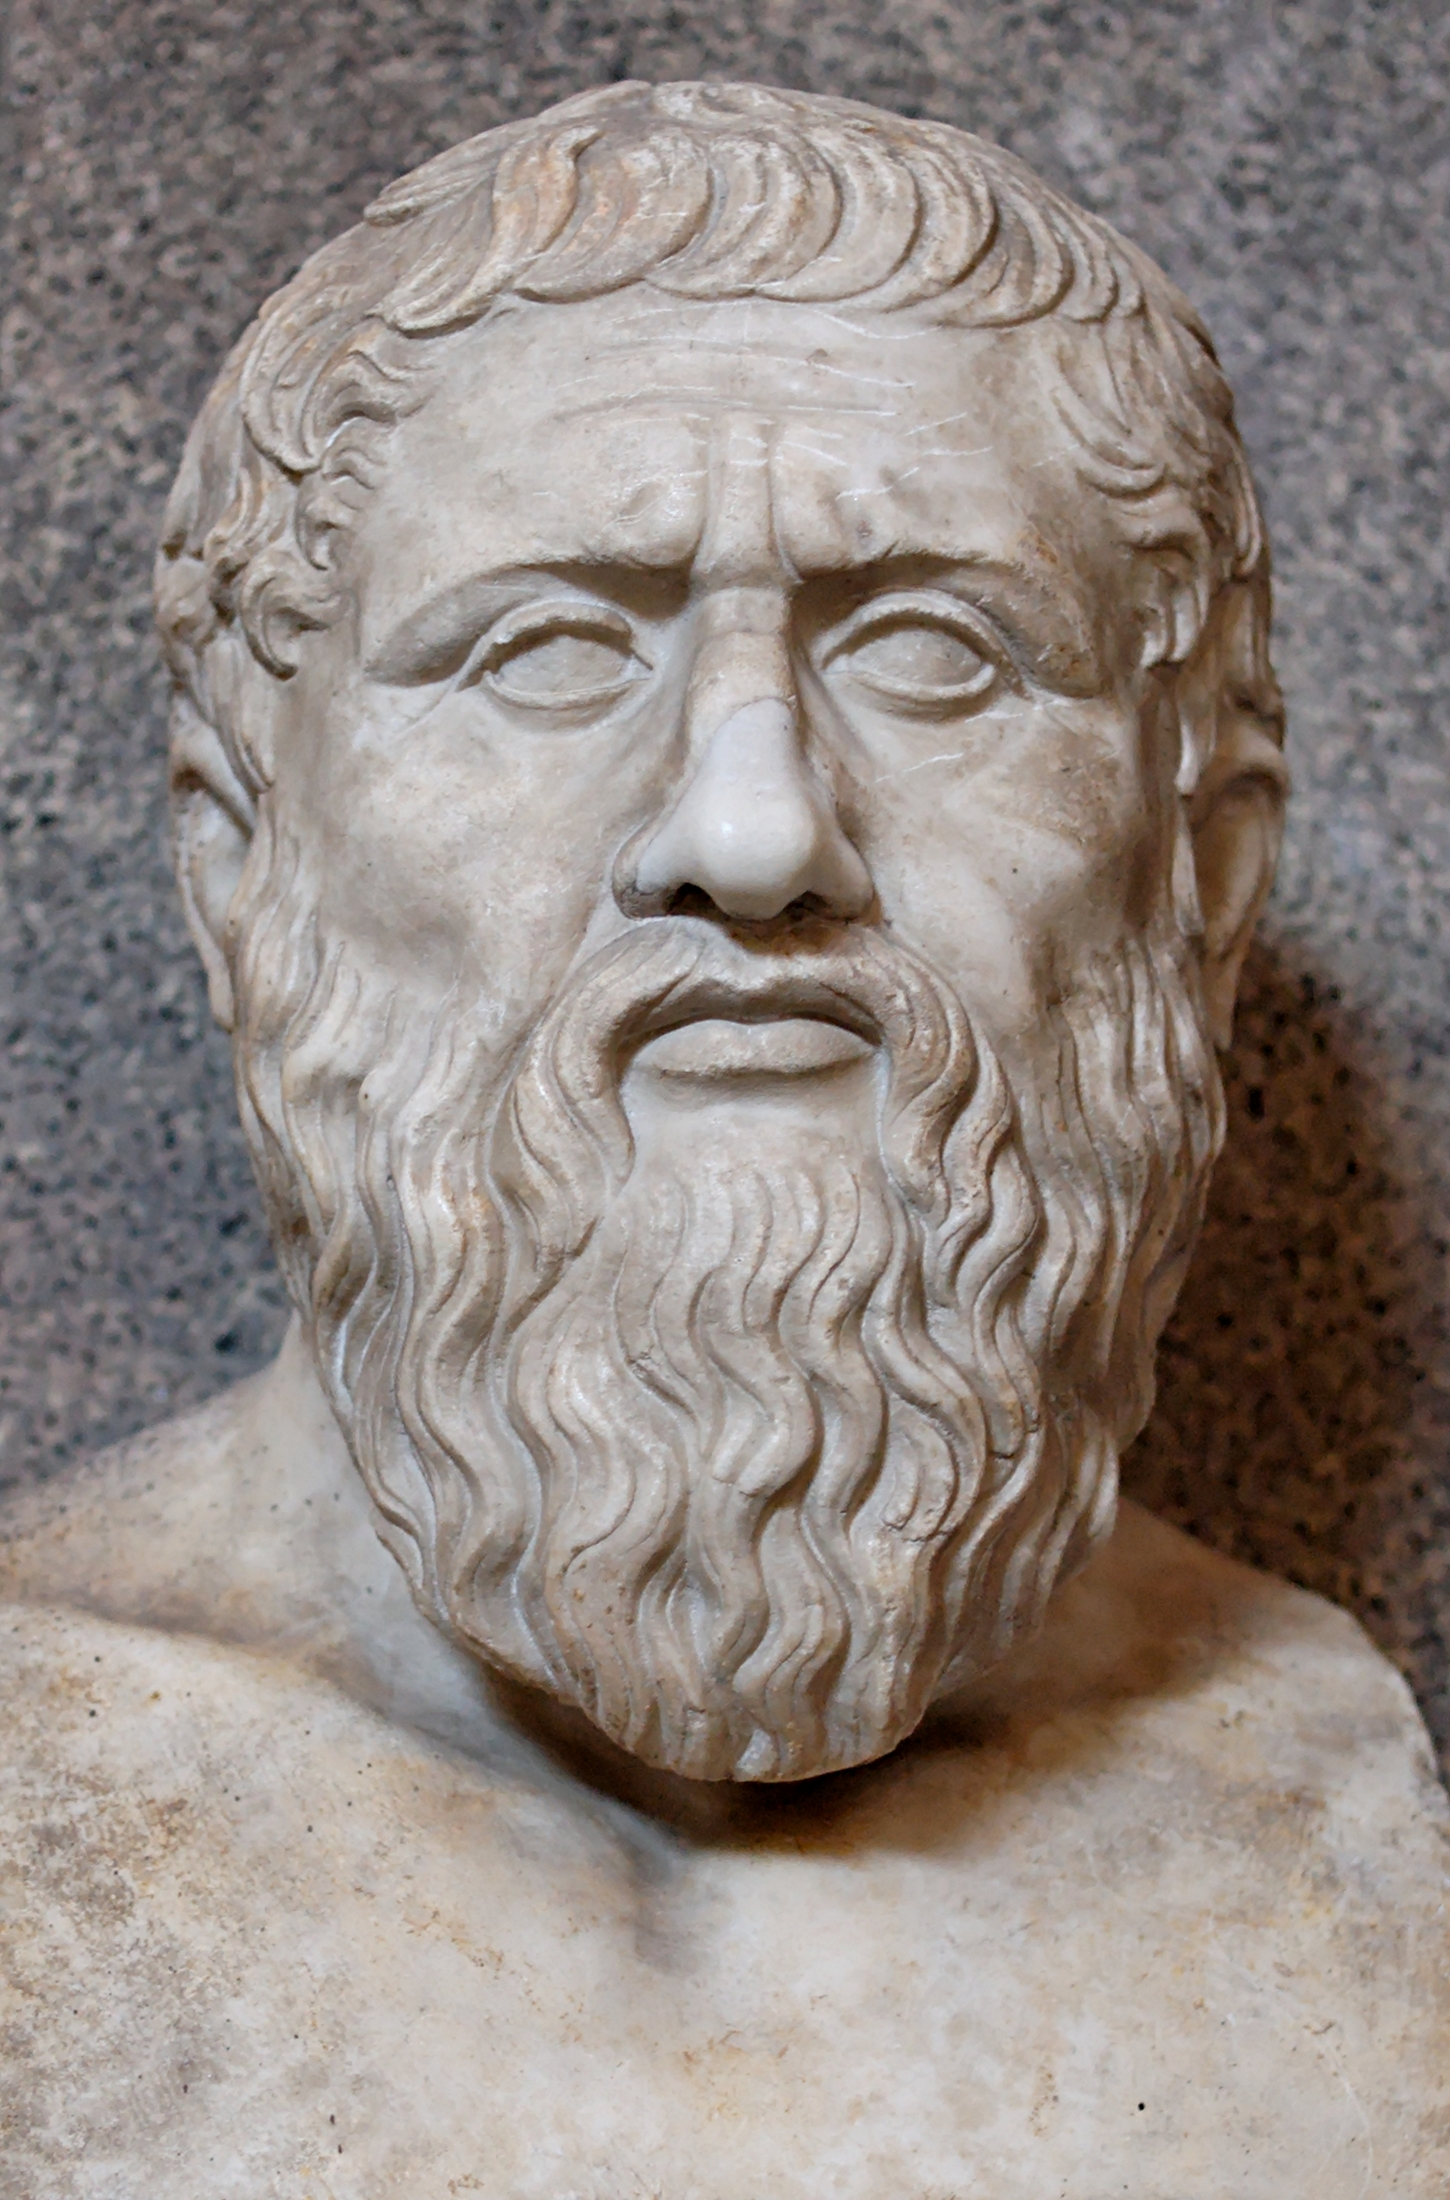 an analysis of aristotle and his notion of virtue an ancient greek philosopher Of all the greek moralists, aristotle provides the most psychologically insightful  account of virtuous character because.